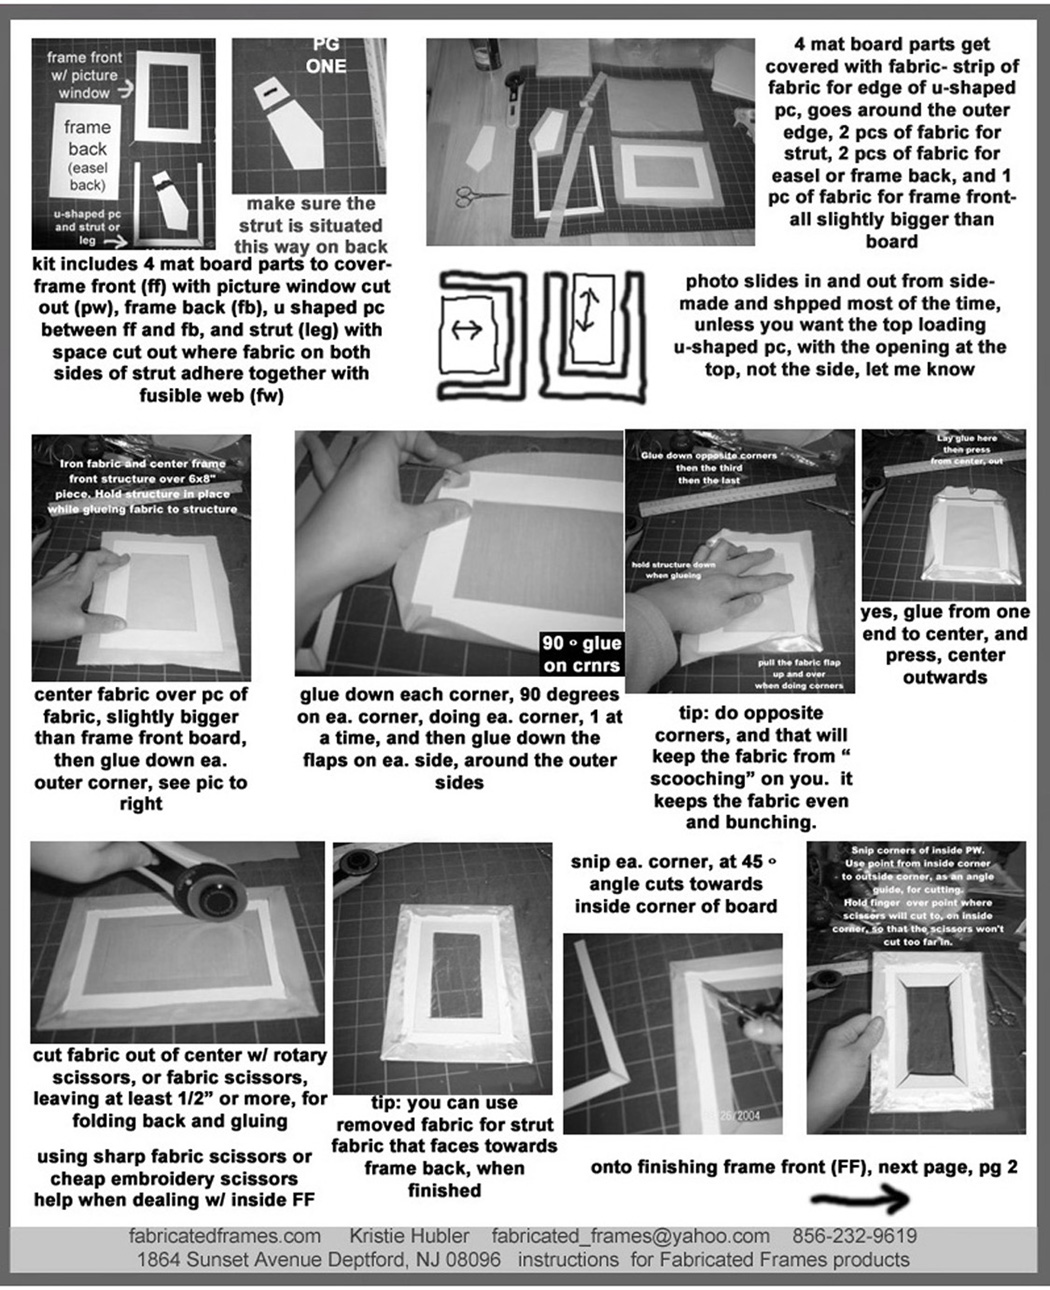 Fabricated frames fabricated means invented frames means page 1 cutting your mat board or cardboard parts covering the front of frame with fabric 4 parts ffb frame front border board front of frame with jeuxipadfo Images